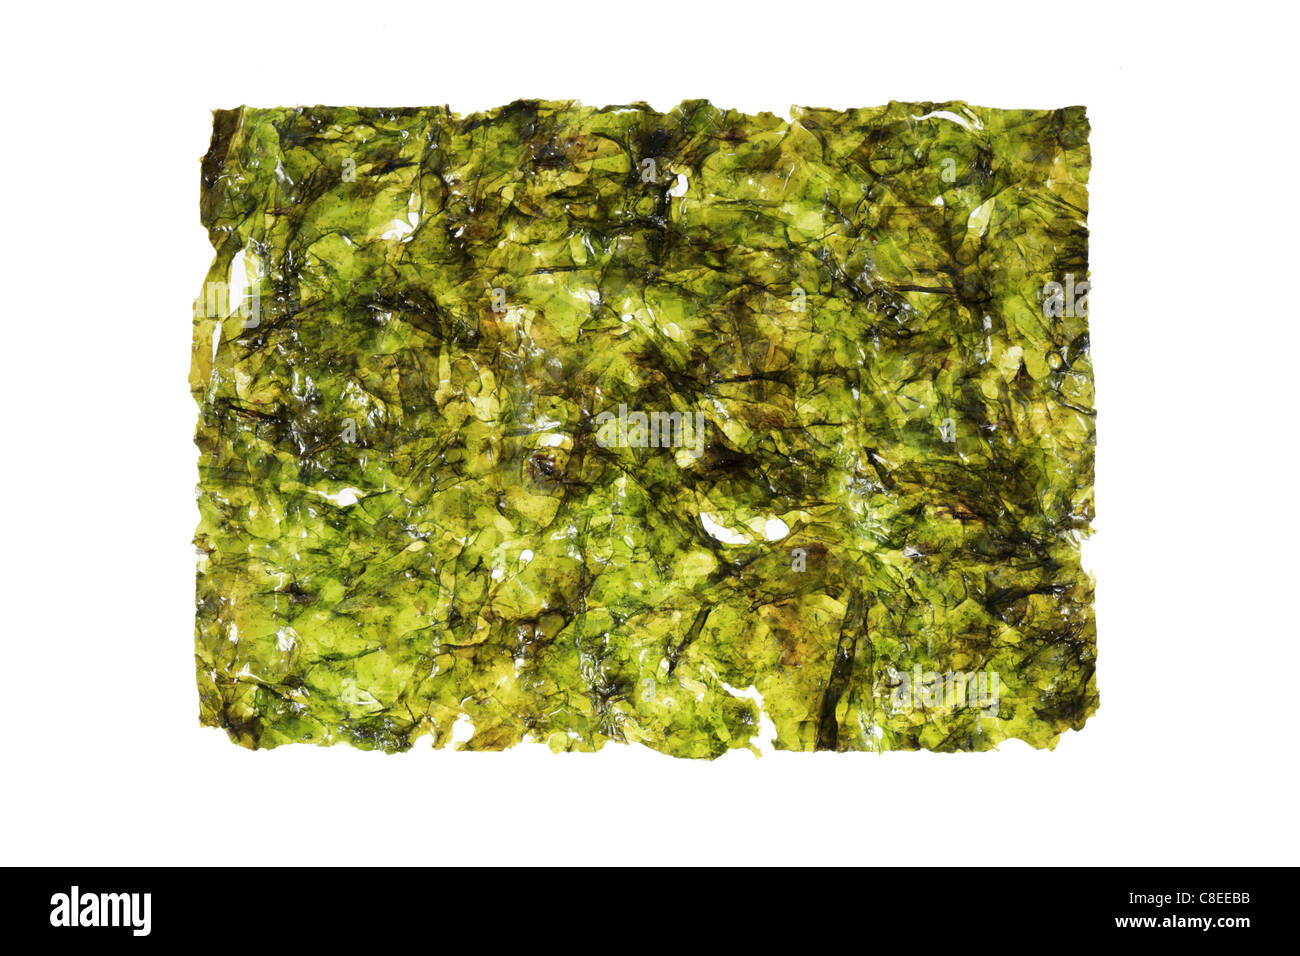 nori seaweed sheet isolated on white background - Stock Image